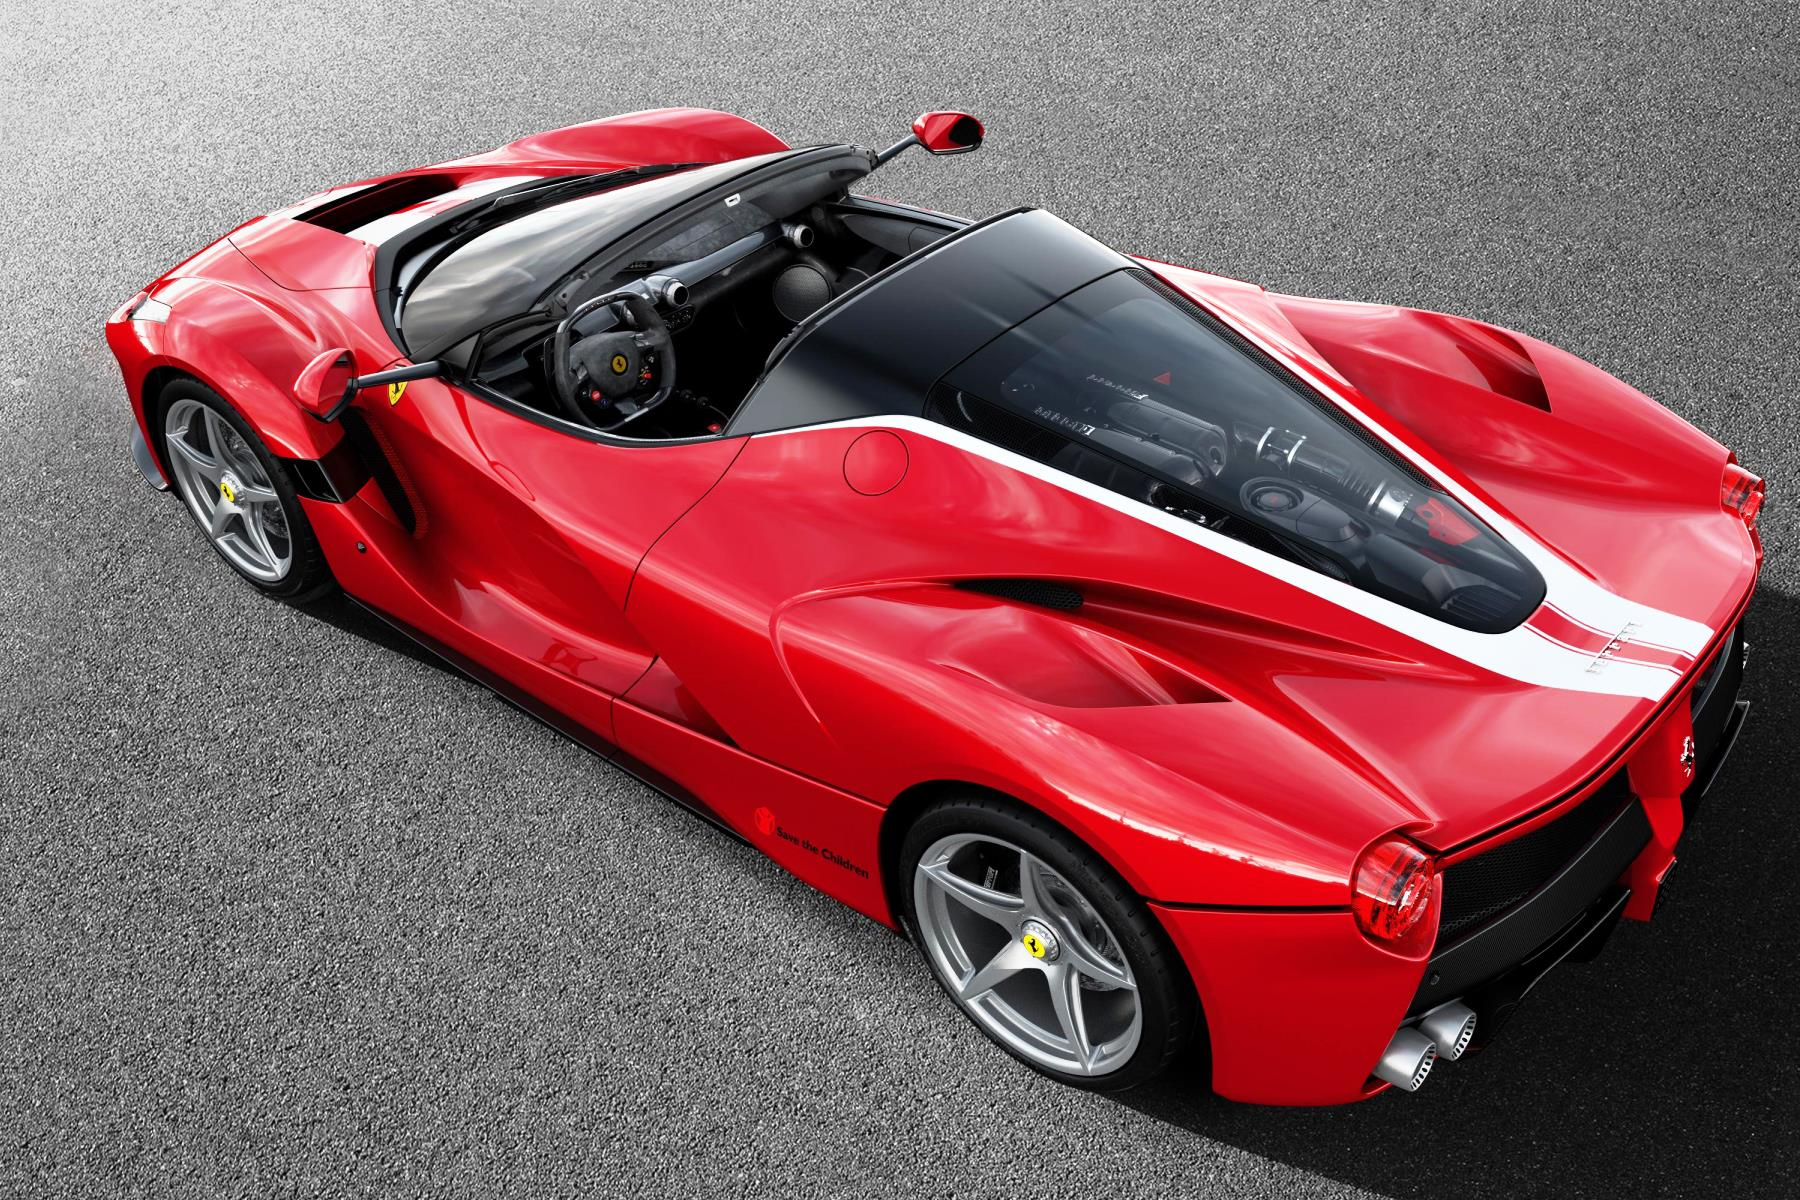 Special LaFerrari Aperta raises R129m for charity